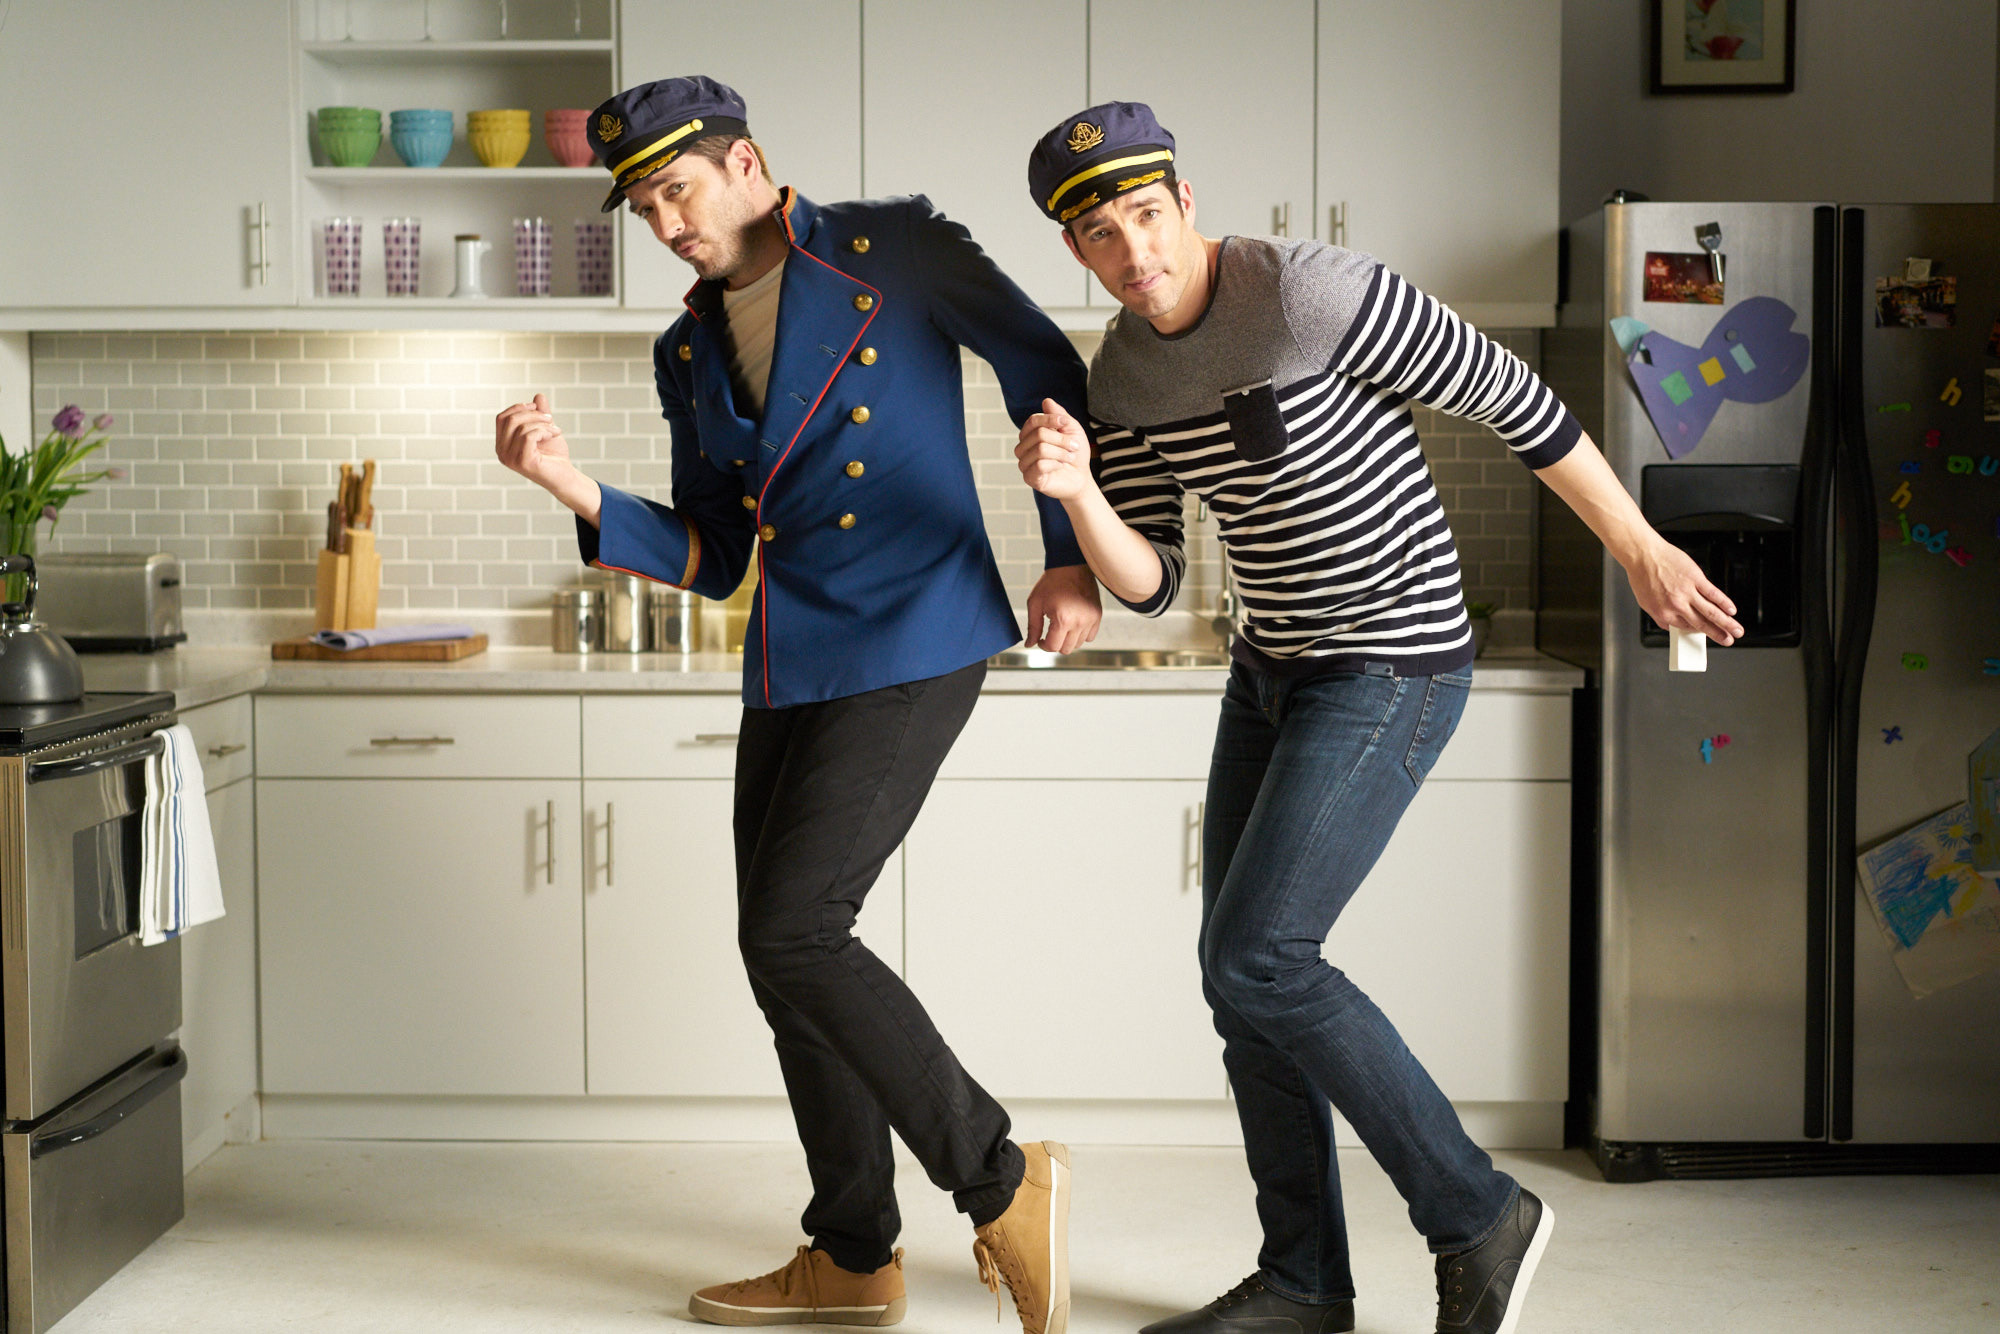 Sneak peek: The Scott Brothers unstick a drawer with soap singing yacht-rock style in music video series.